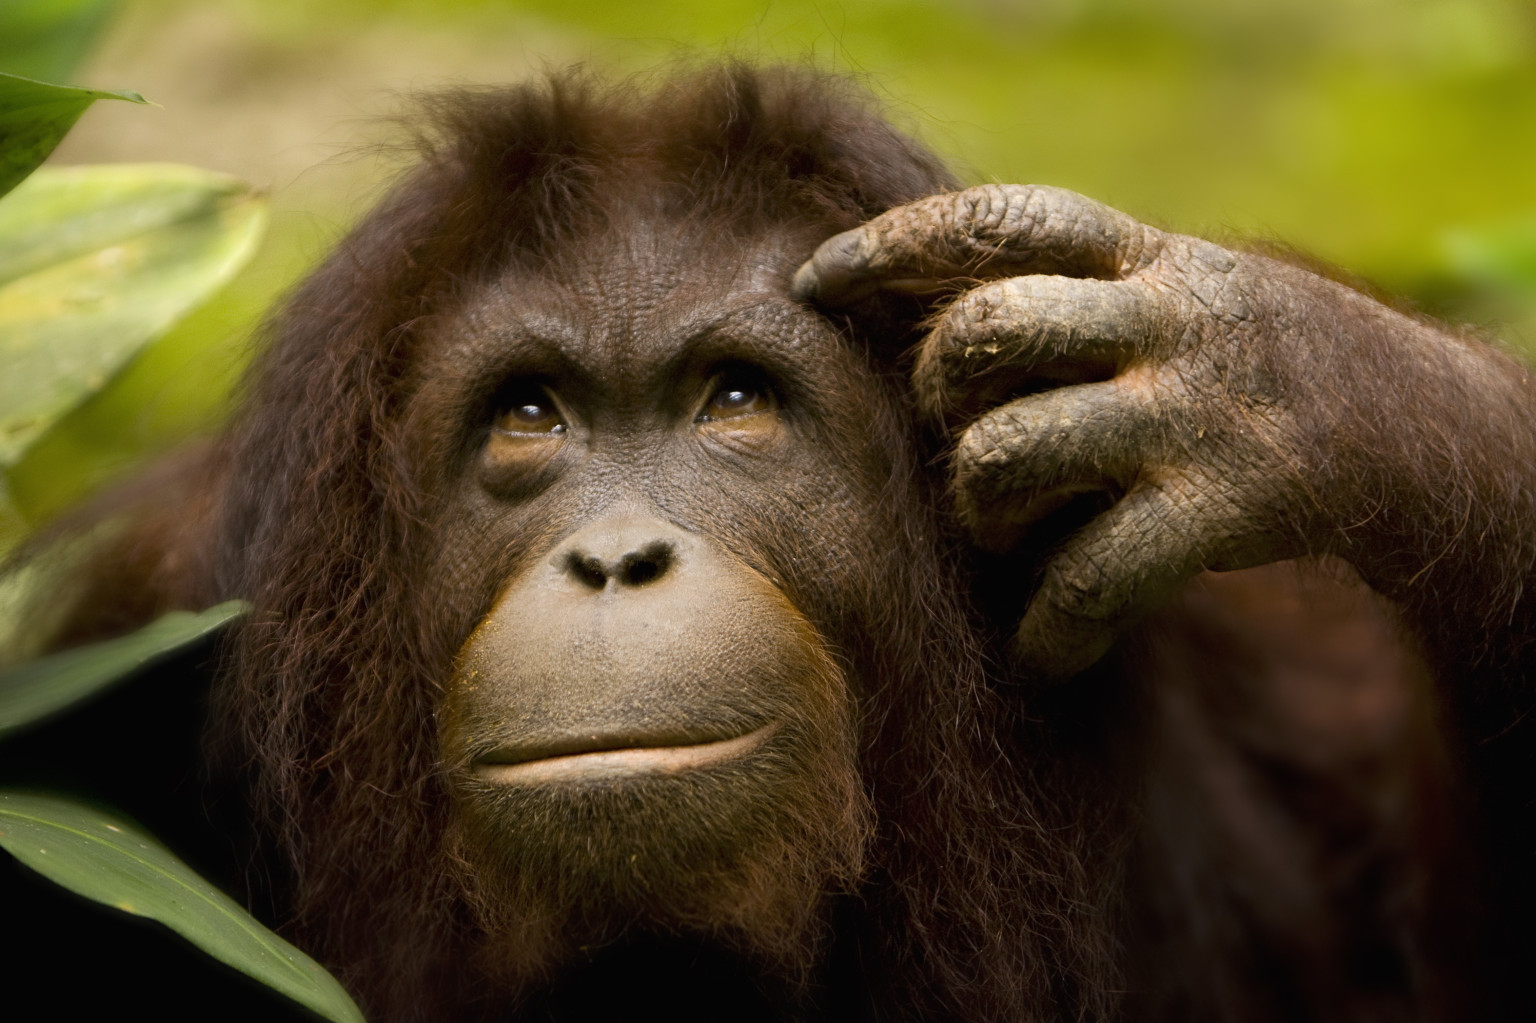 Picture of a thoughtful orangutan